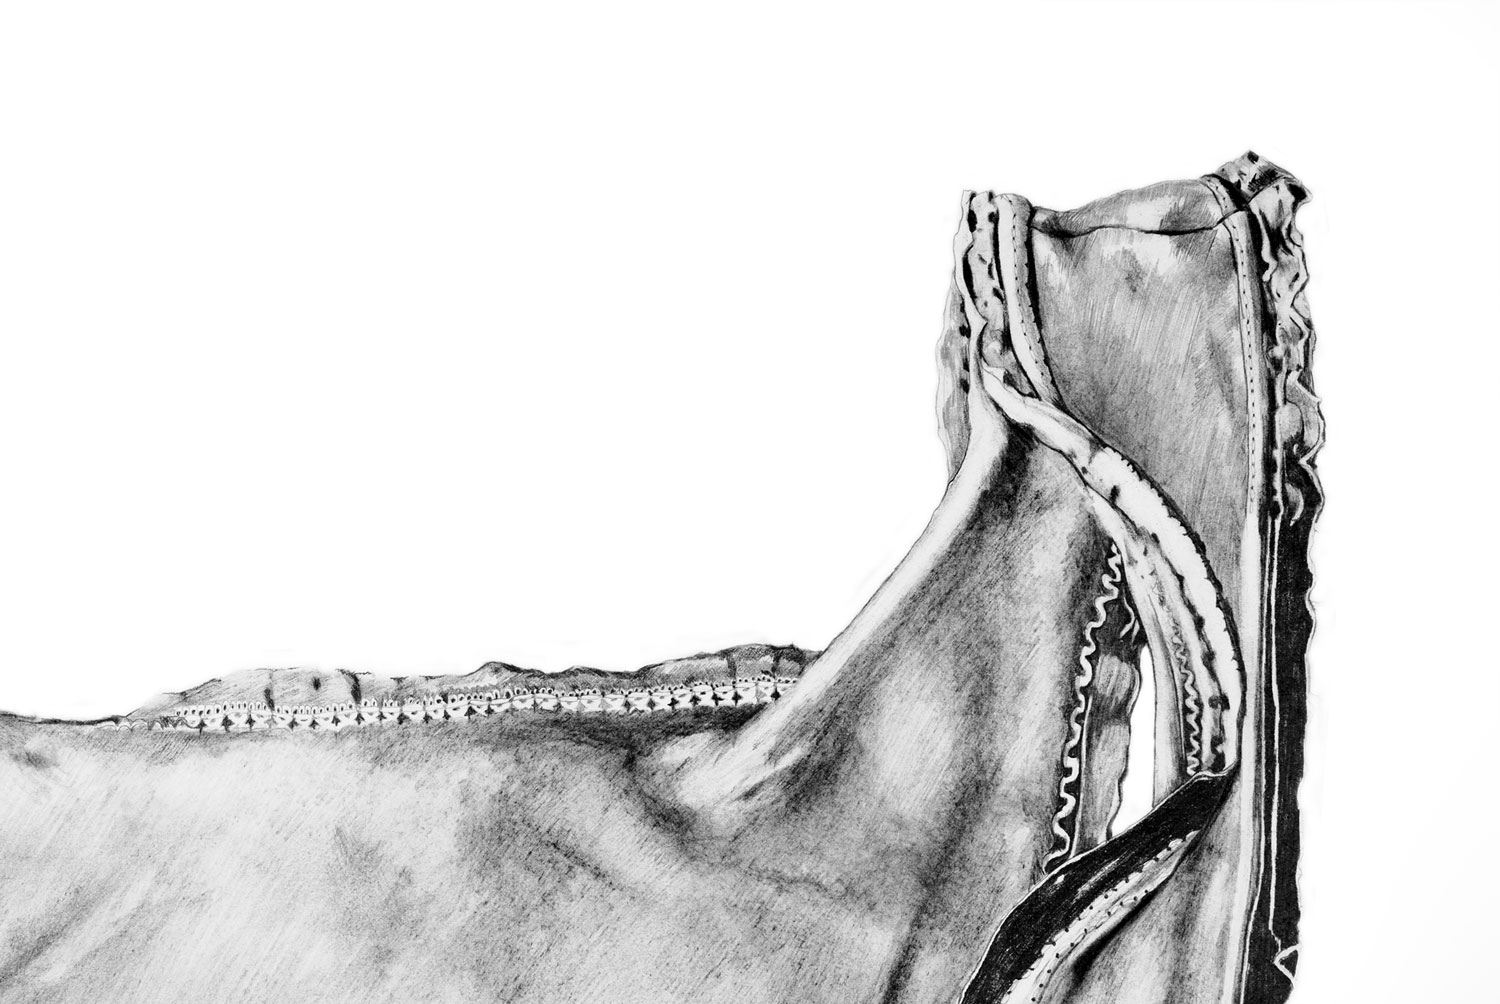 Singlet (detail)   Materials:  Graphite on paper   Date of Creation:  2006  Collection of Wardlow Art Residency, Melbourne